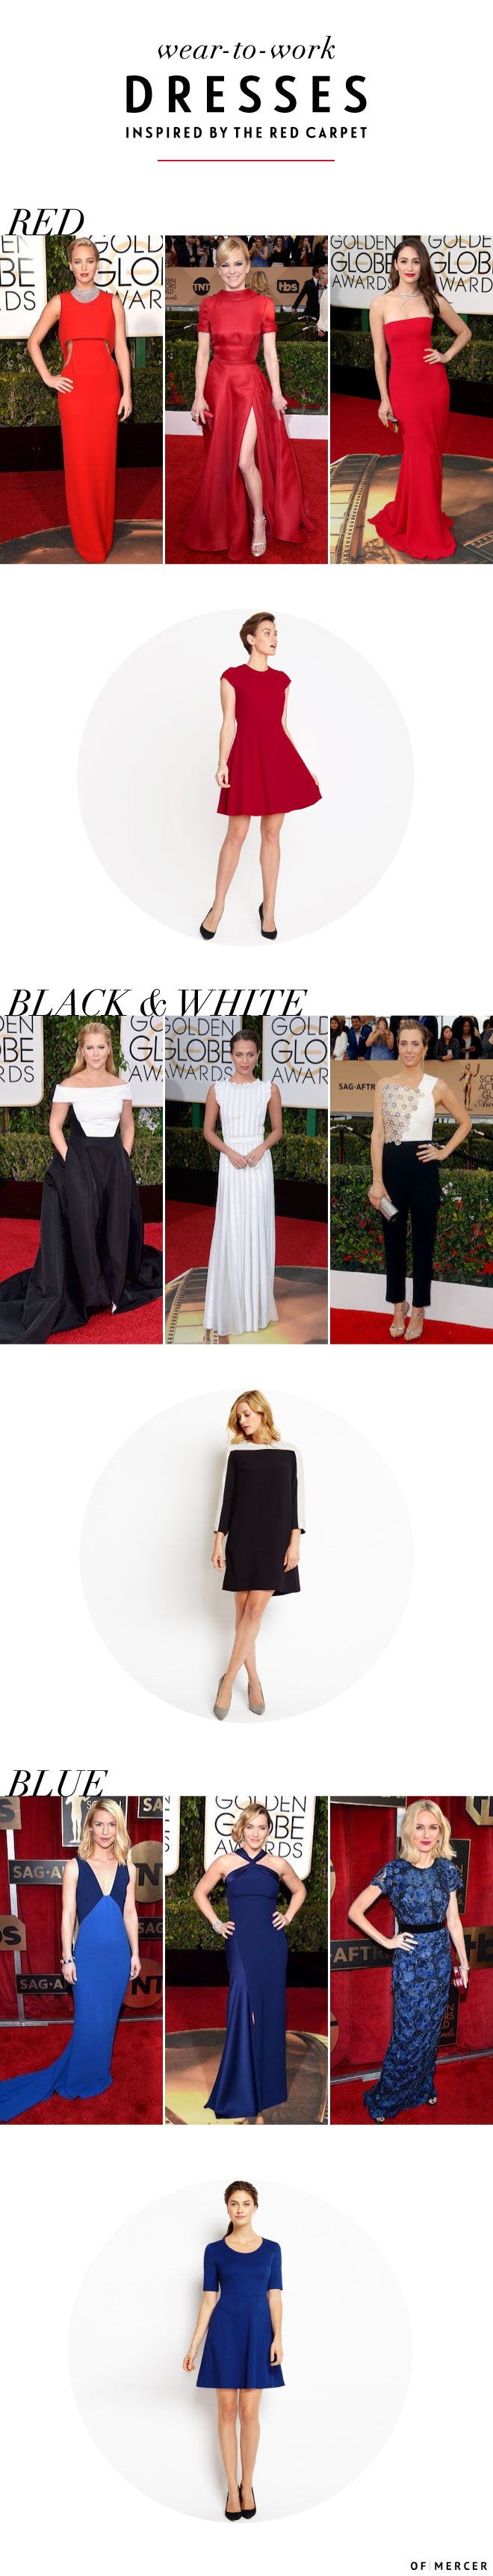 Red Carpet Inspired Wear to Work Looks | Of Mercer Blog Main Image